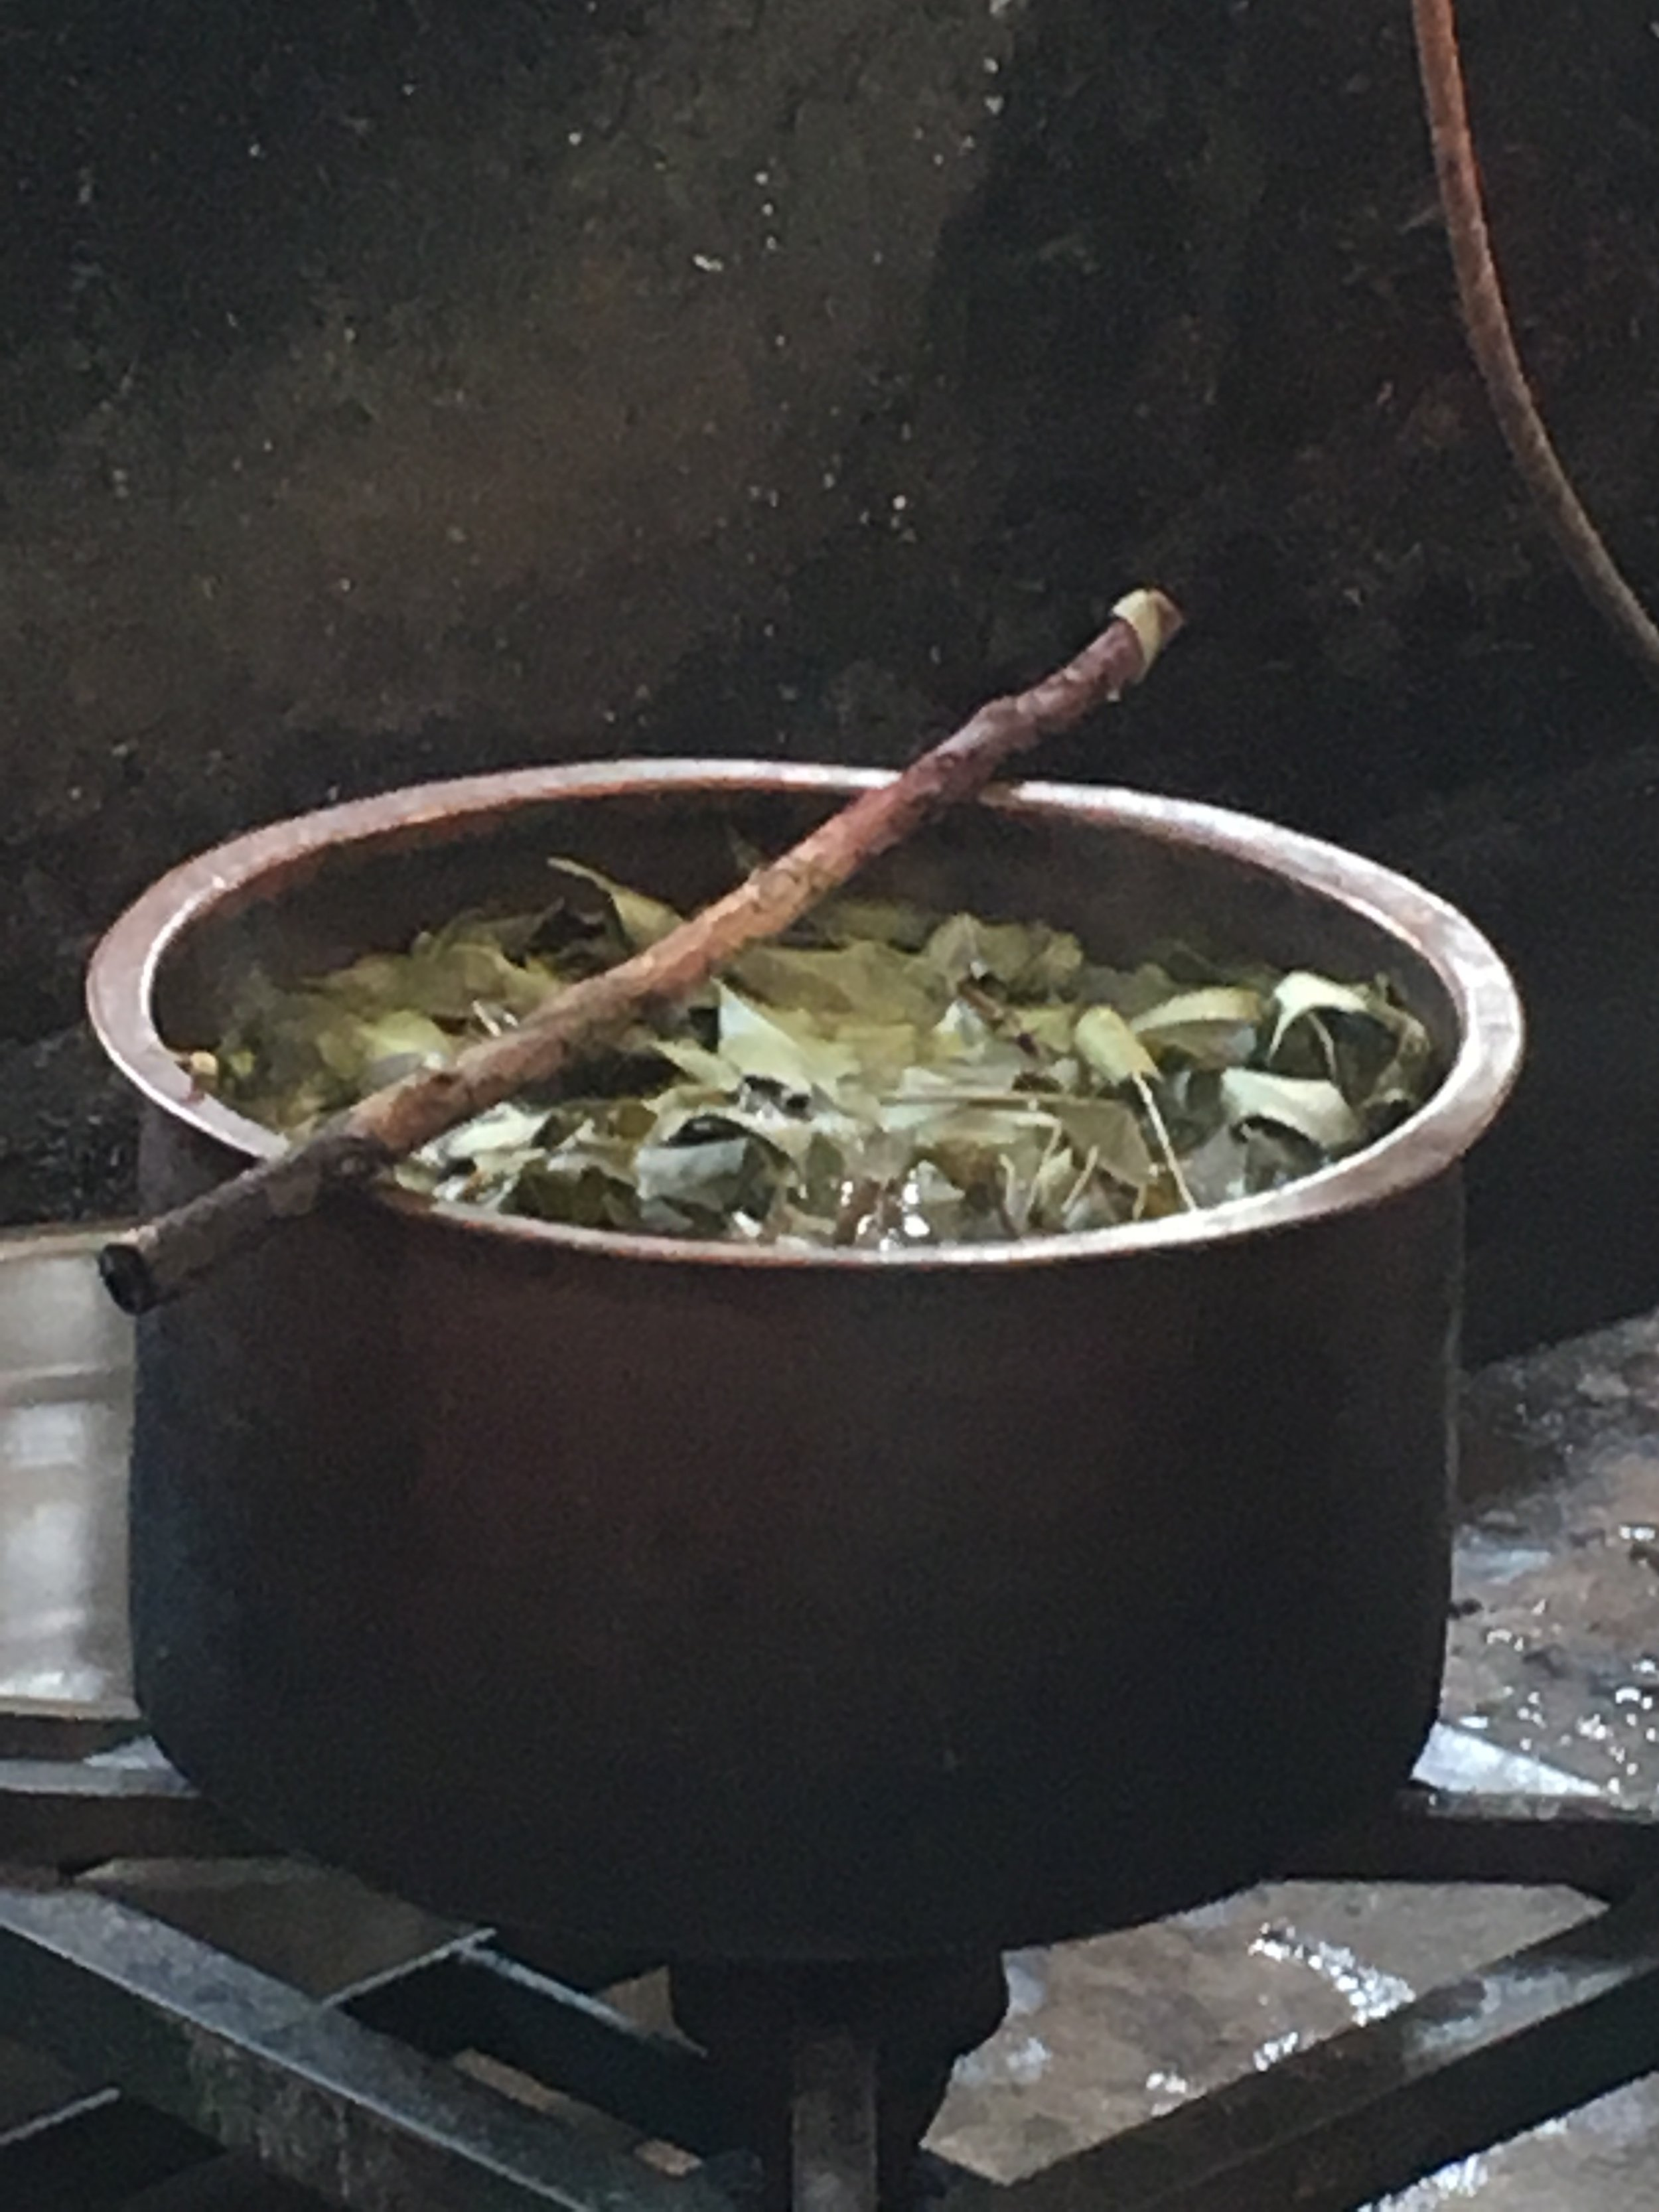 The leaves are boiled to extract the color